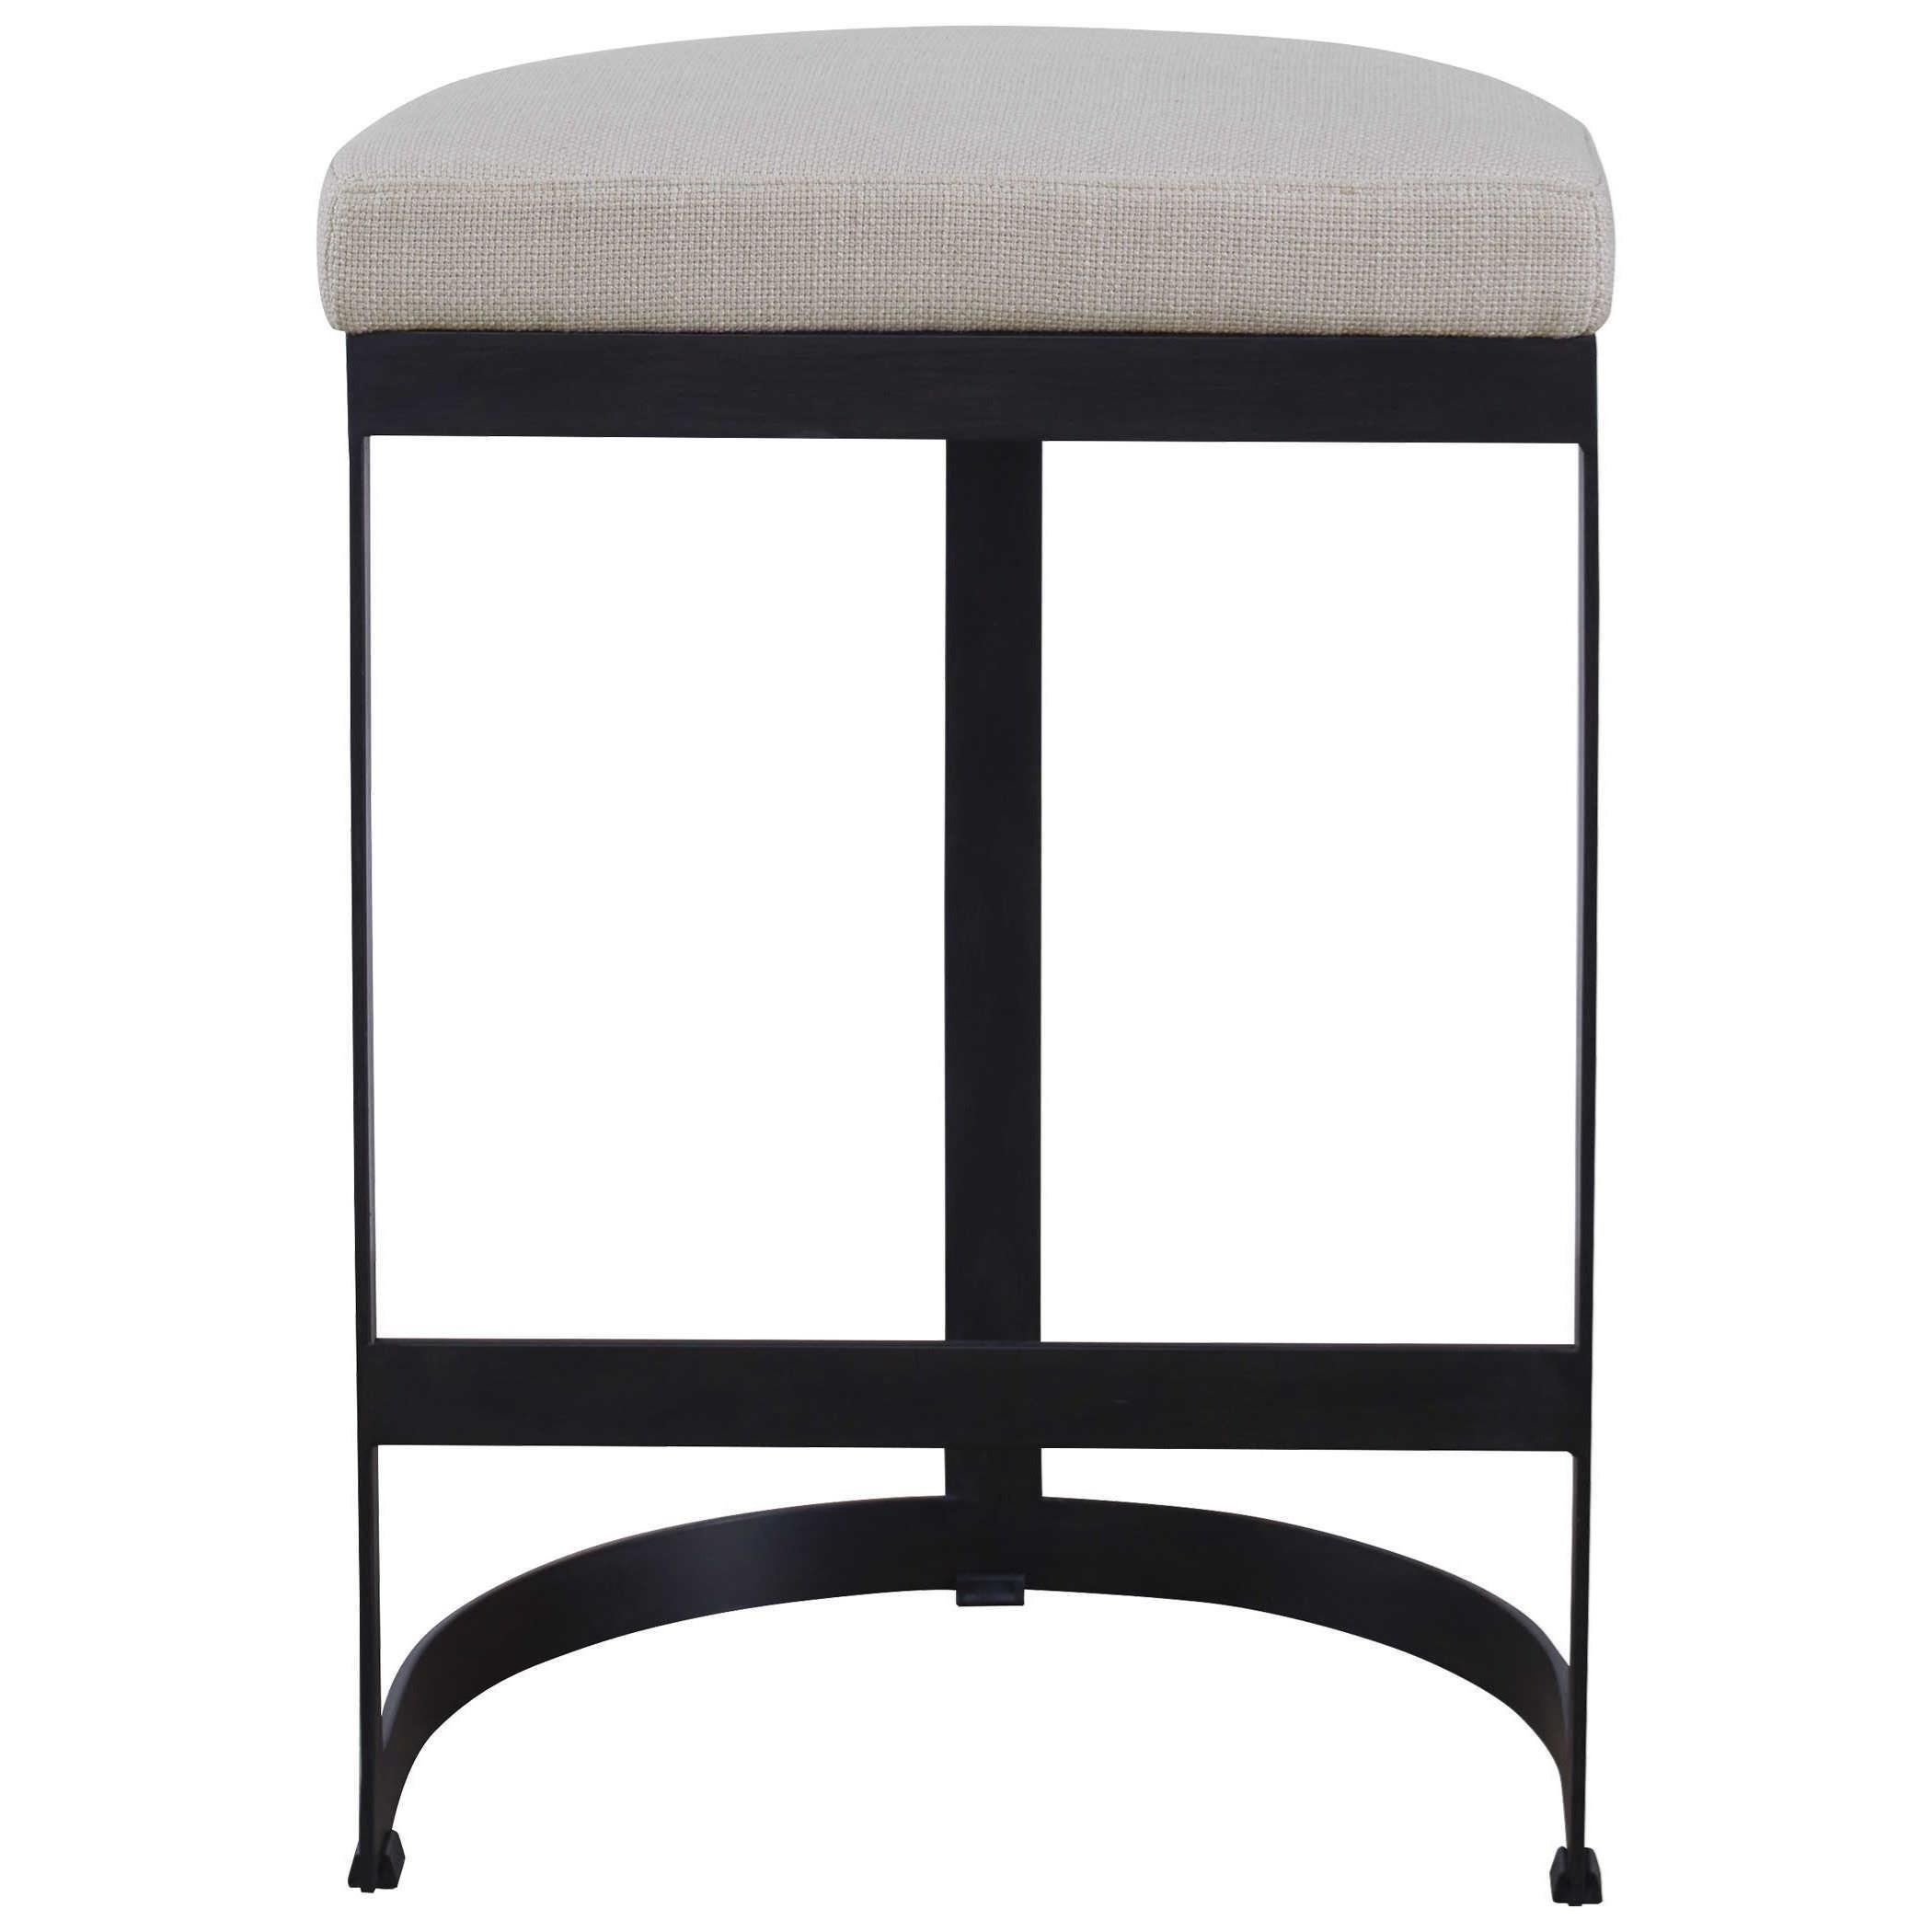 Accent Furniture - Stools Ivanna Black Iron Counter Stool by Uttermost at Factory Direct Furniture